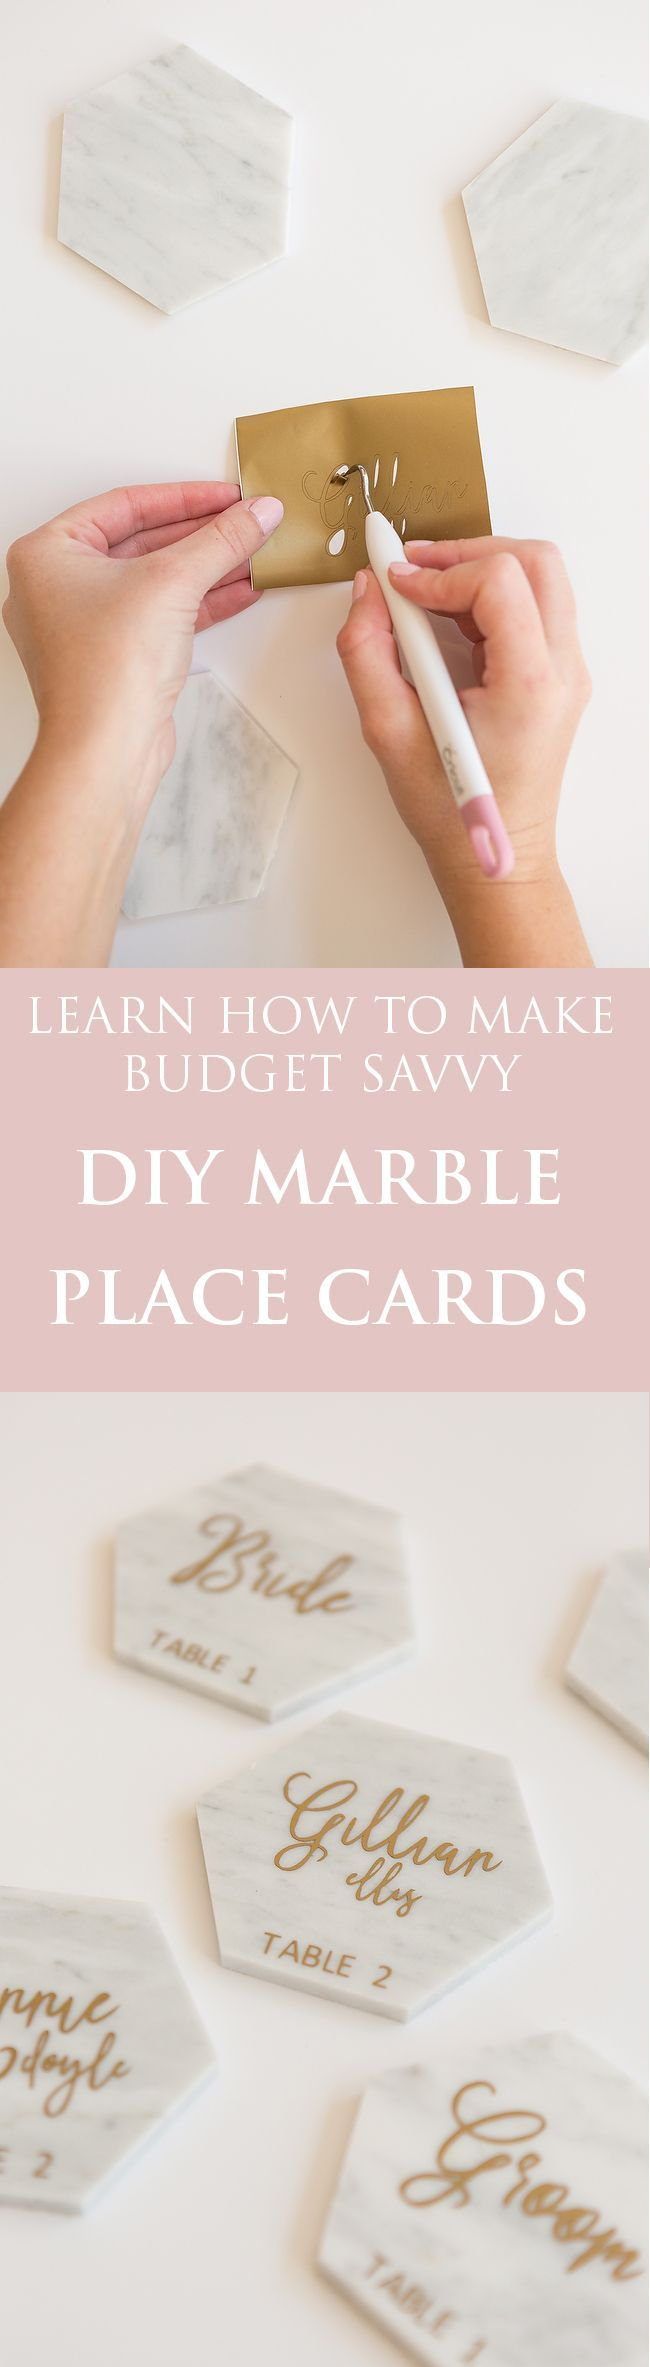 Budget Savvy DIY Marble Place Cards I